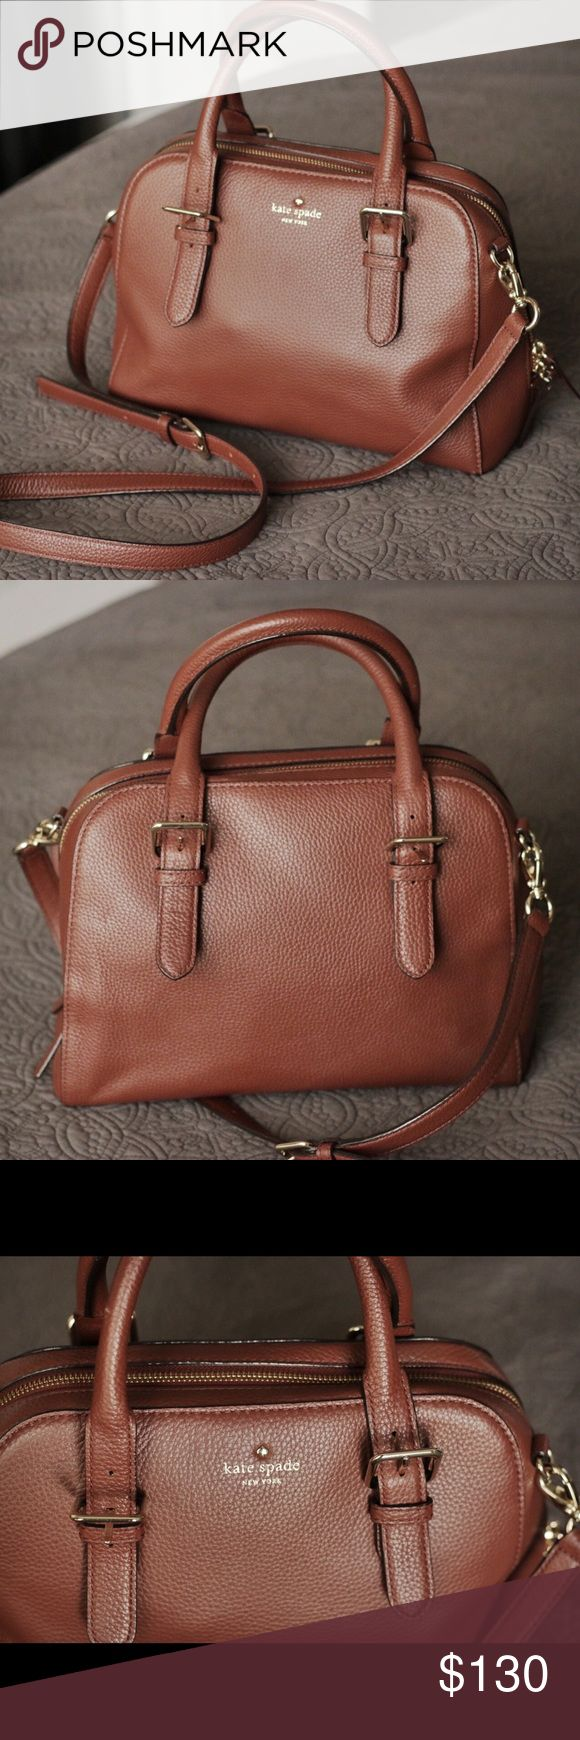 "Kate Spade Brighton Park Pebble Leather Satchel This is the perfect every day bag! The color is a beautiful warm, roast brown. 10.3""L x 8.4""H x 4.5""W kate spade Bags Satchels"